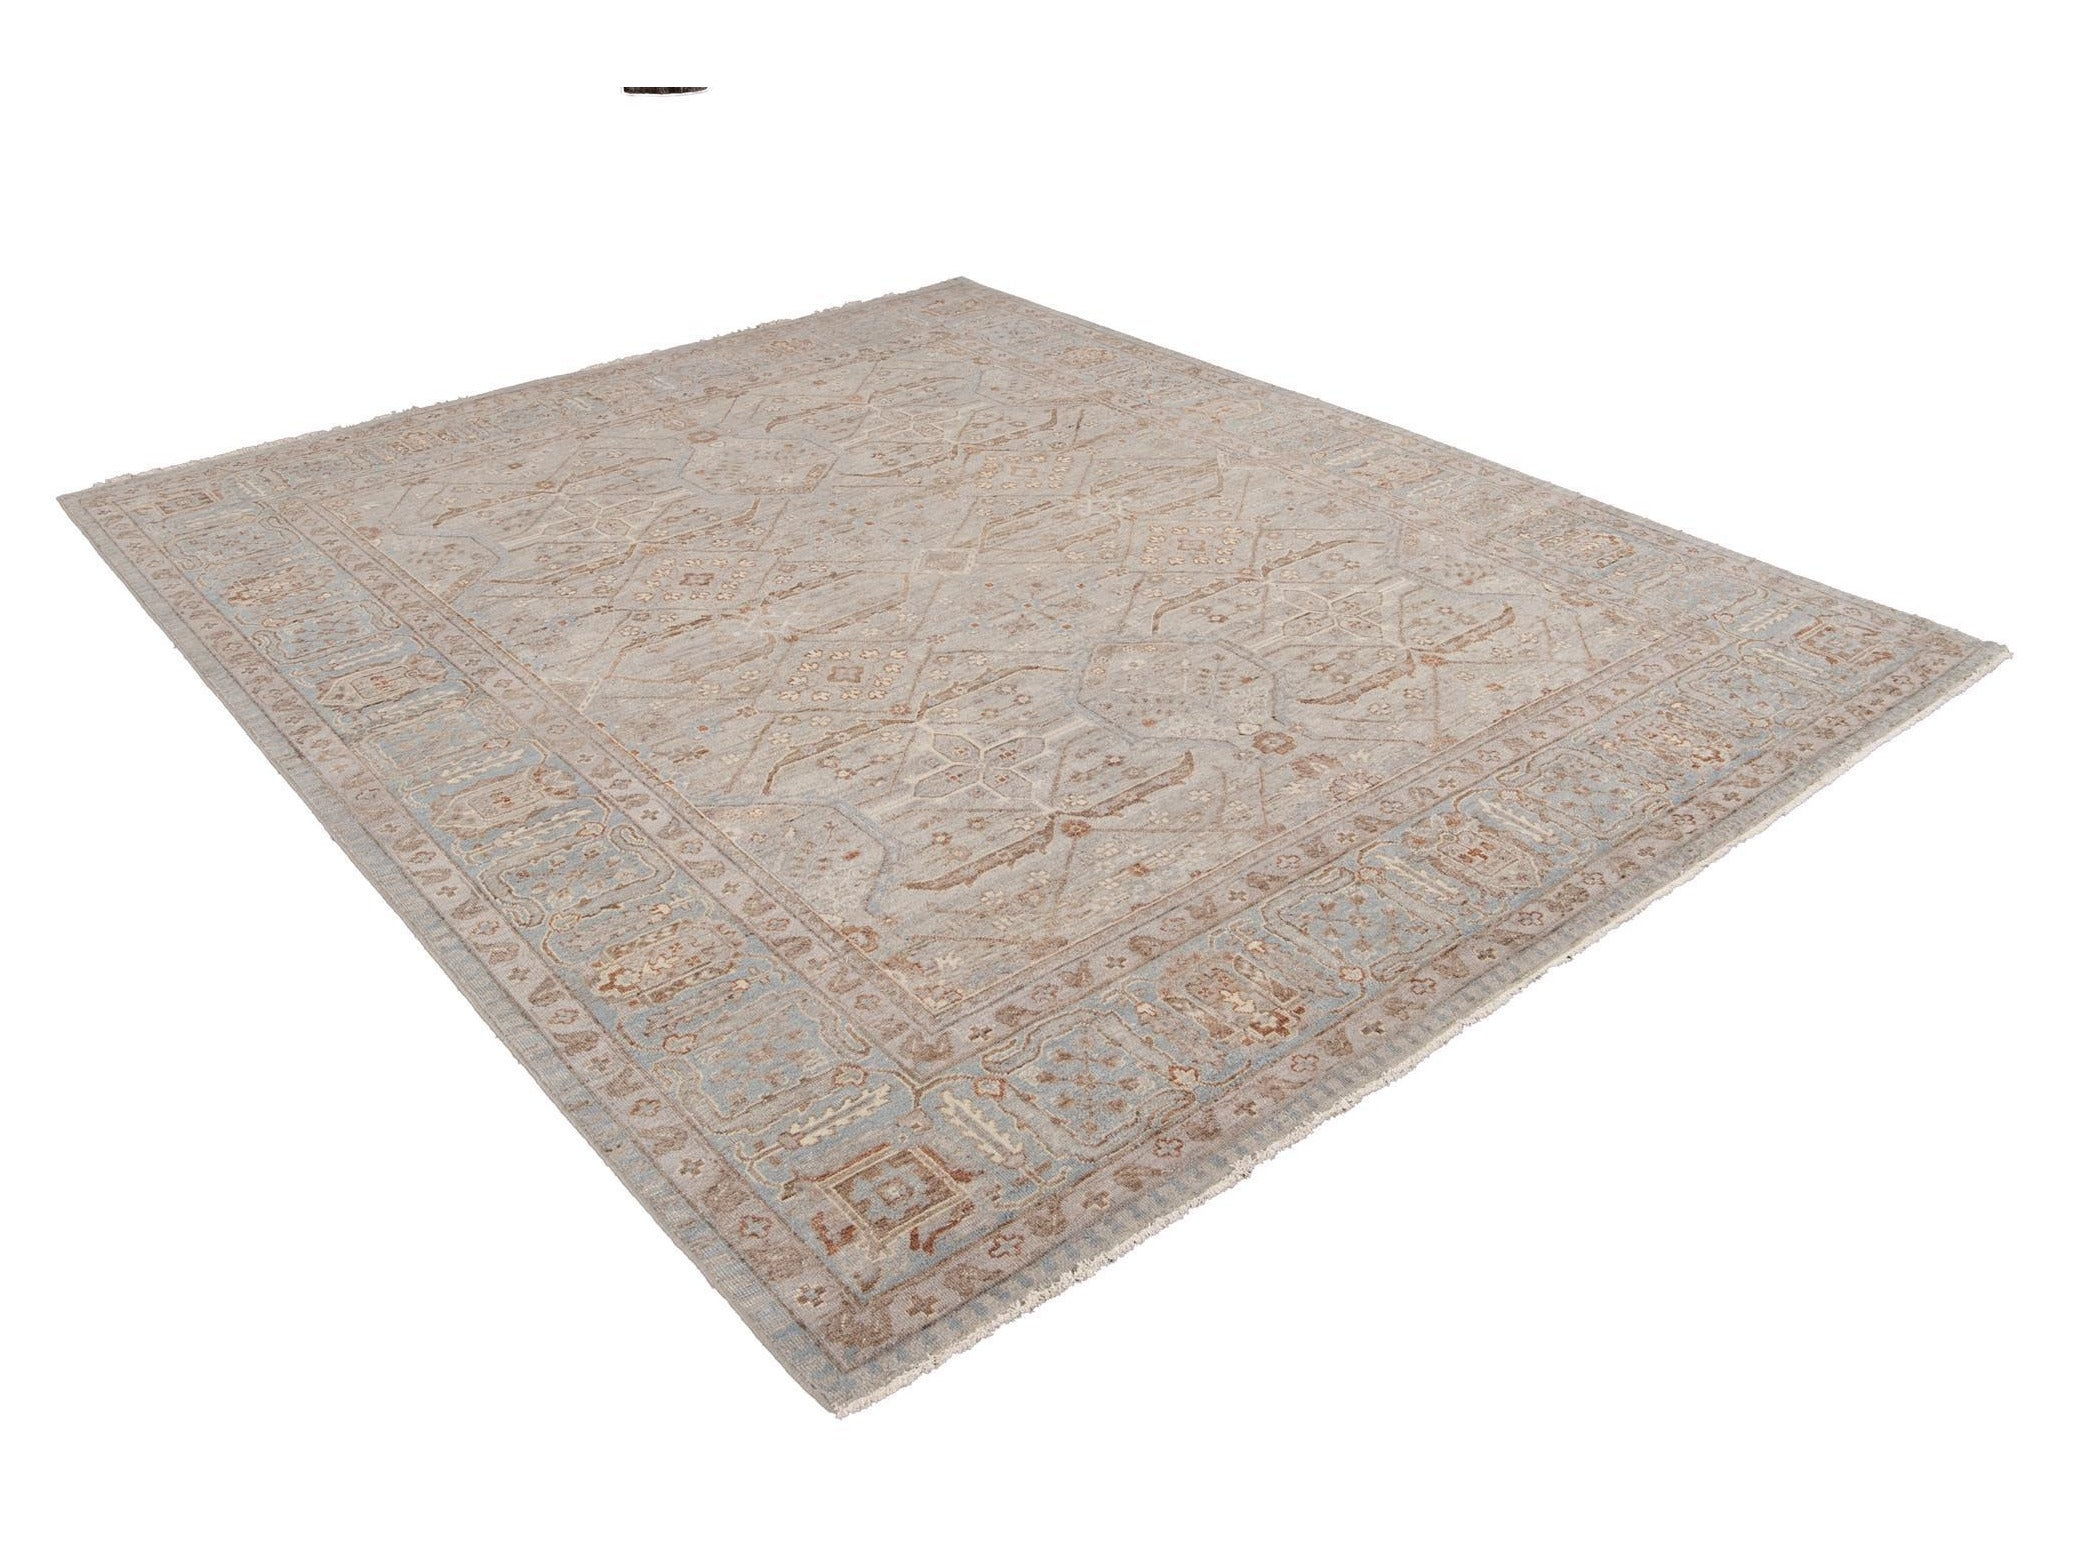 21st Century Contemporary Indian Wool Rug, 8 X 10